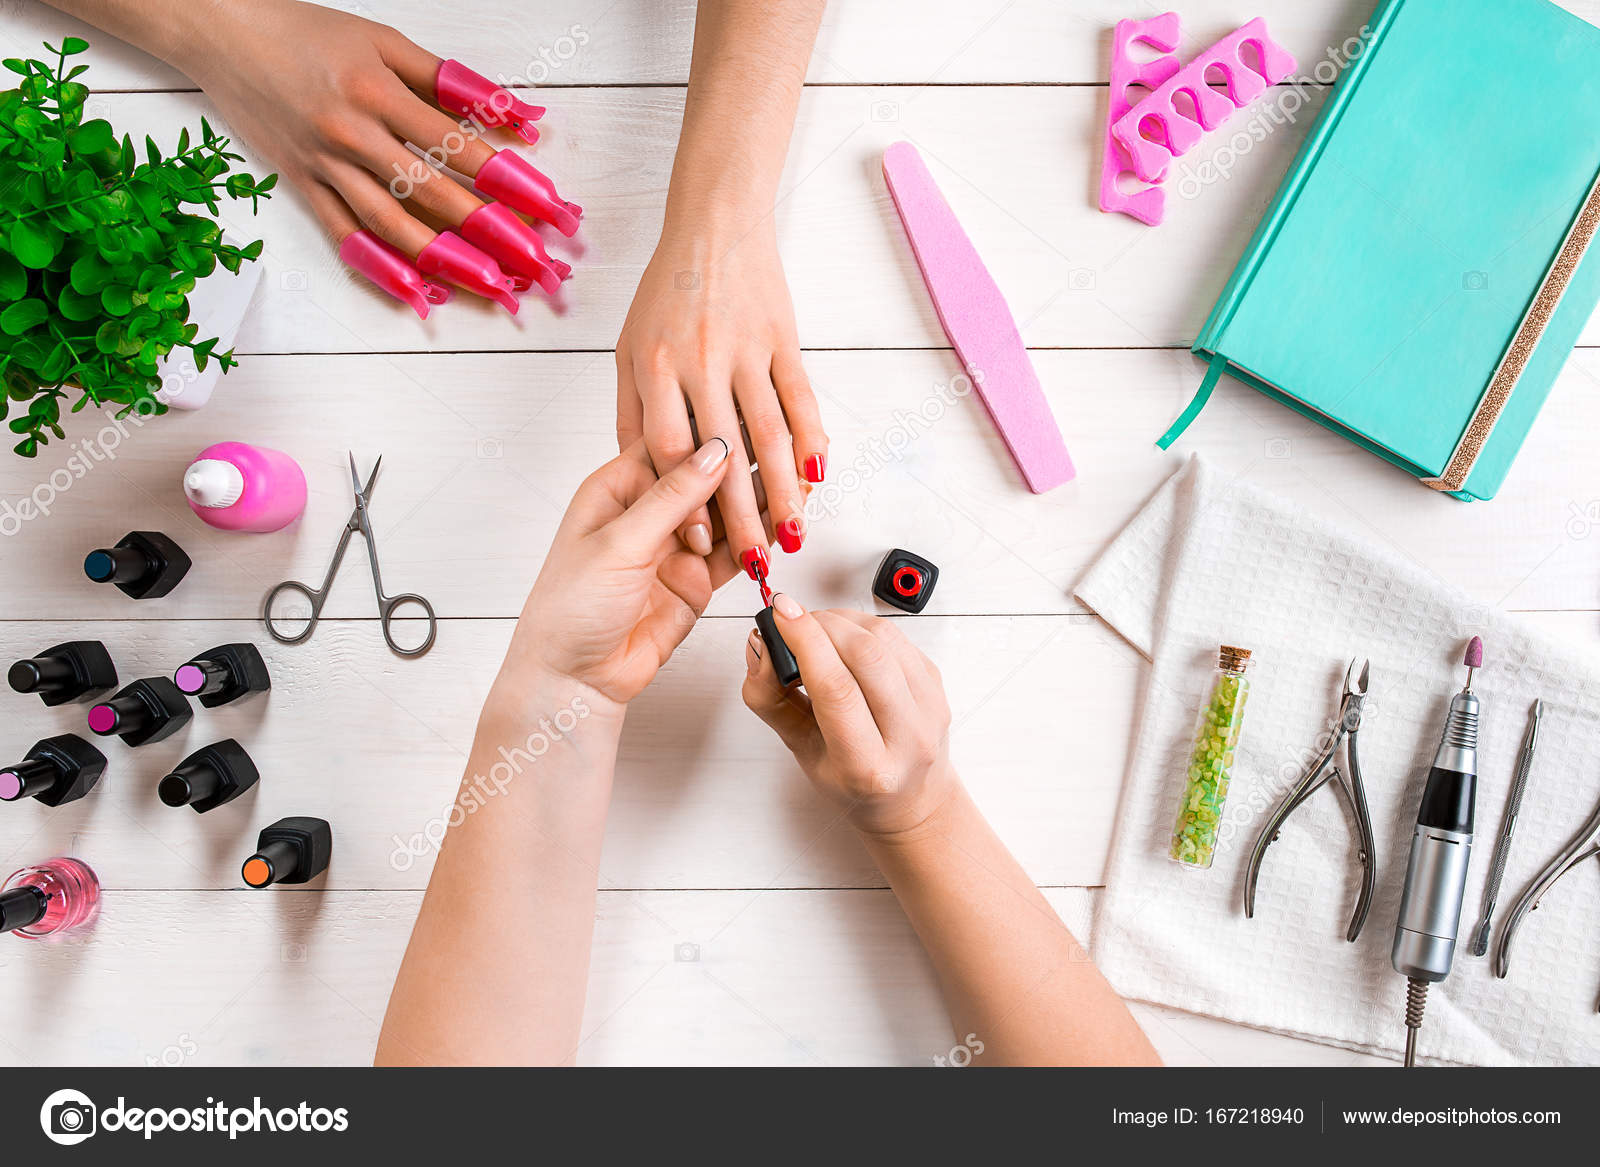 Nail care. Closeup of female hands filing nails with professional ...